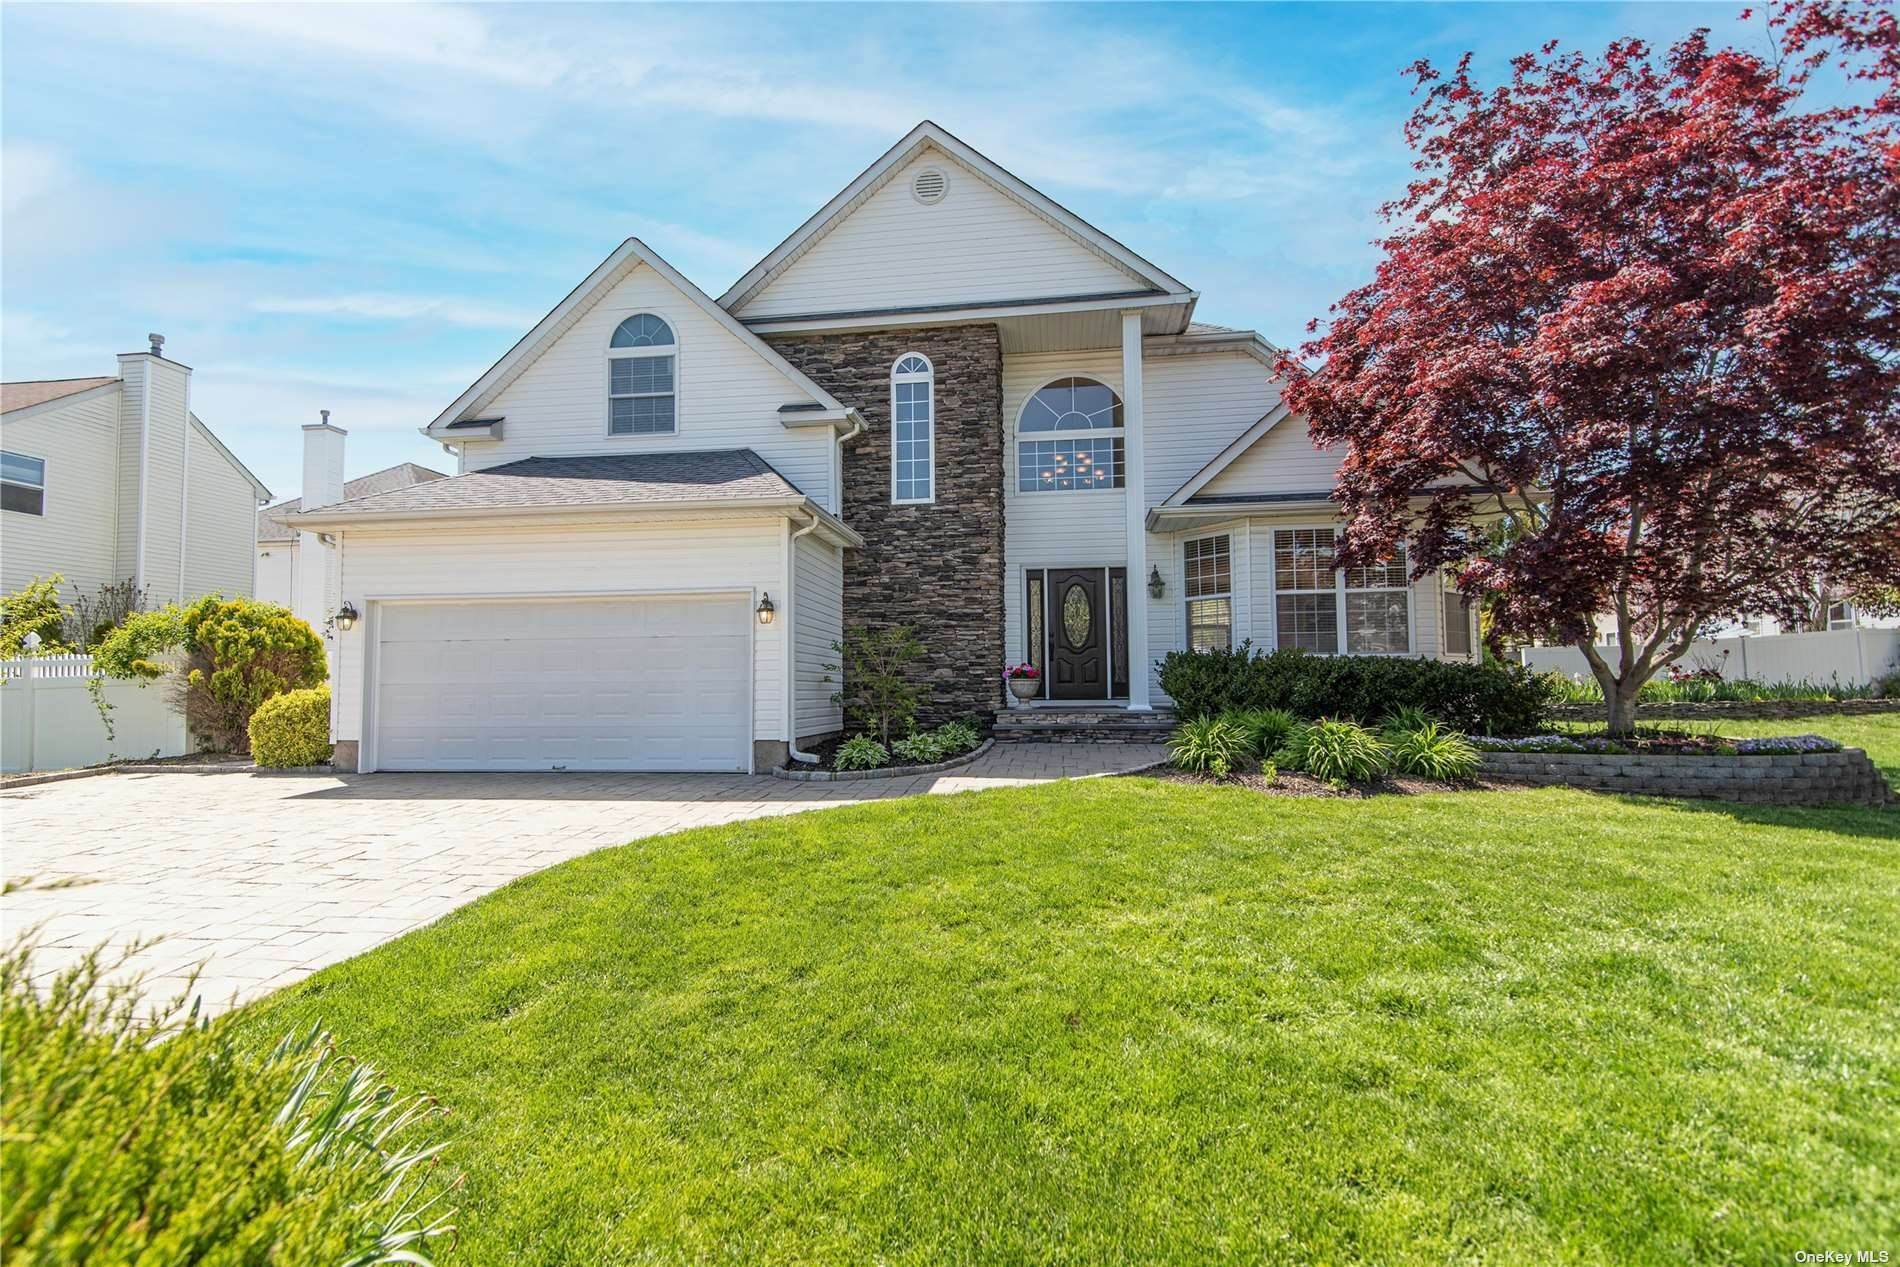 Residential for Sale at 18 Hickory Hill Drive Holtsville, New York 11742 United States